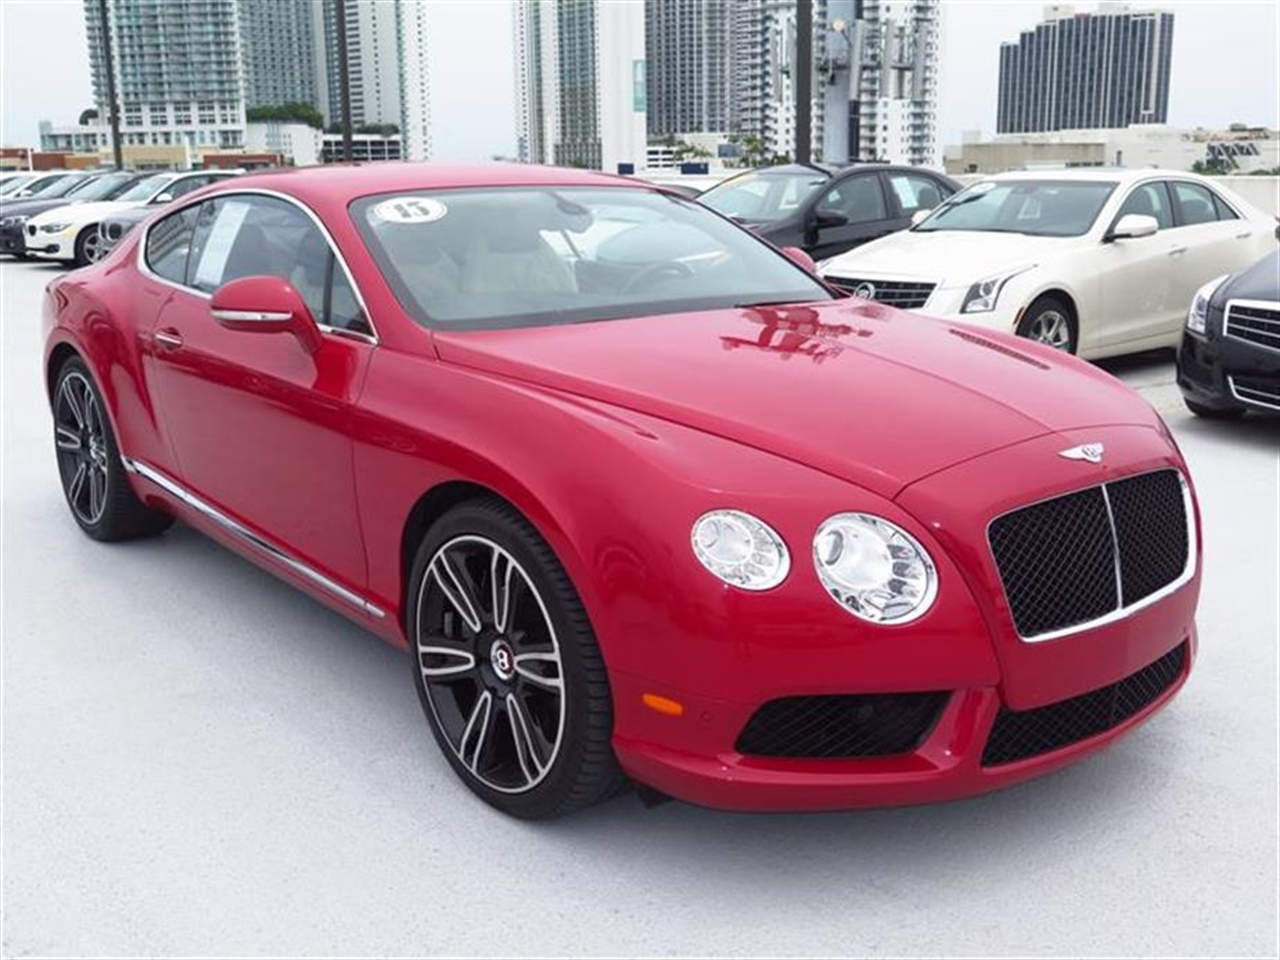 2013 BENTLEY CONTINENTAL GT 2dr Cpe 4851 miles 3-spoke monotone leather trimmed steering wheel C